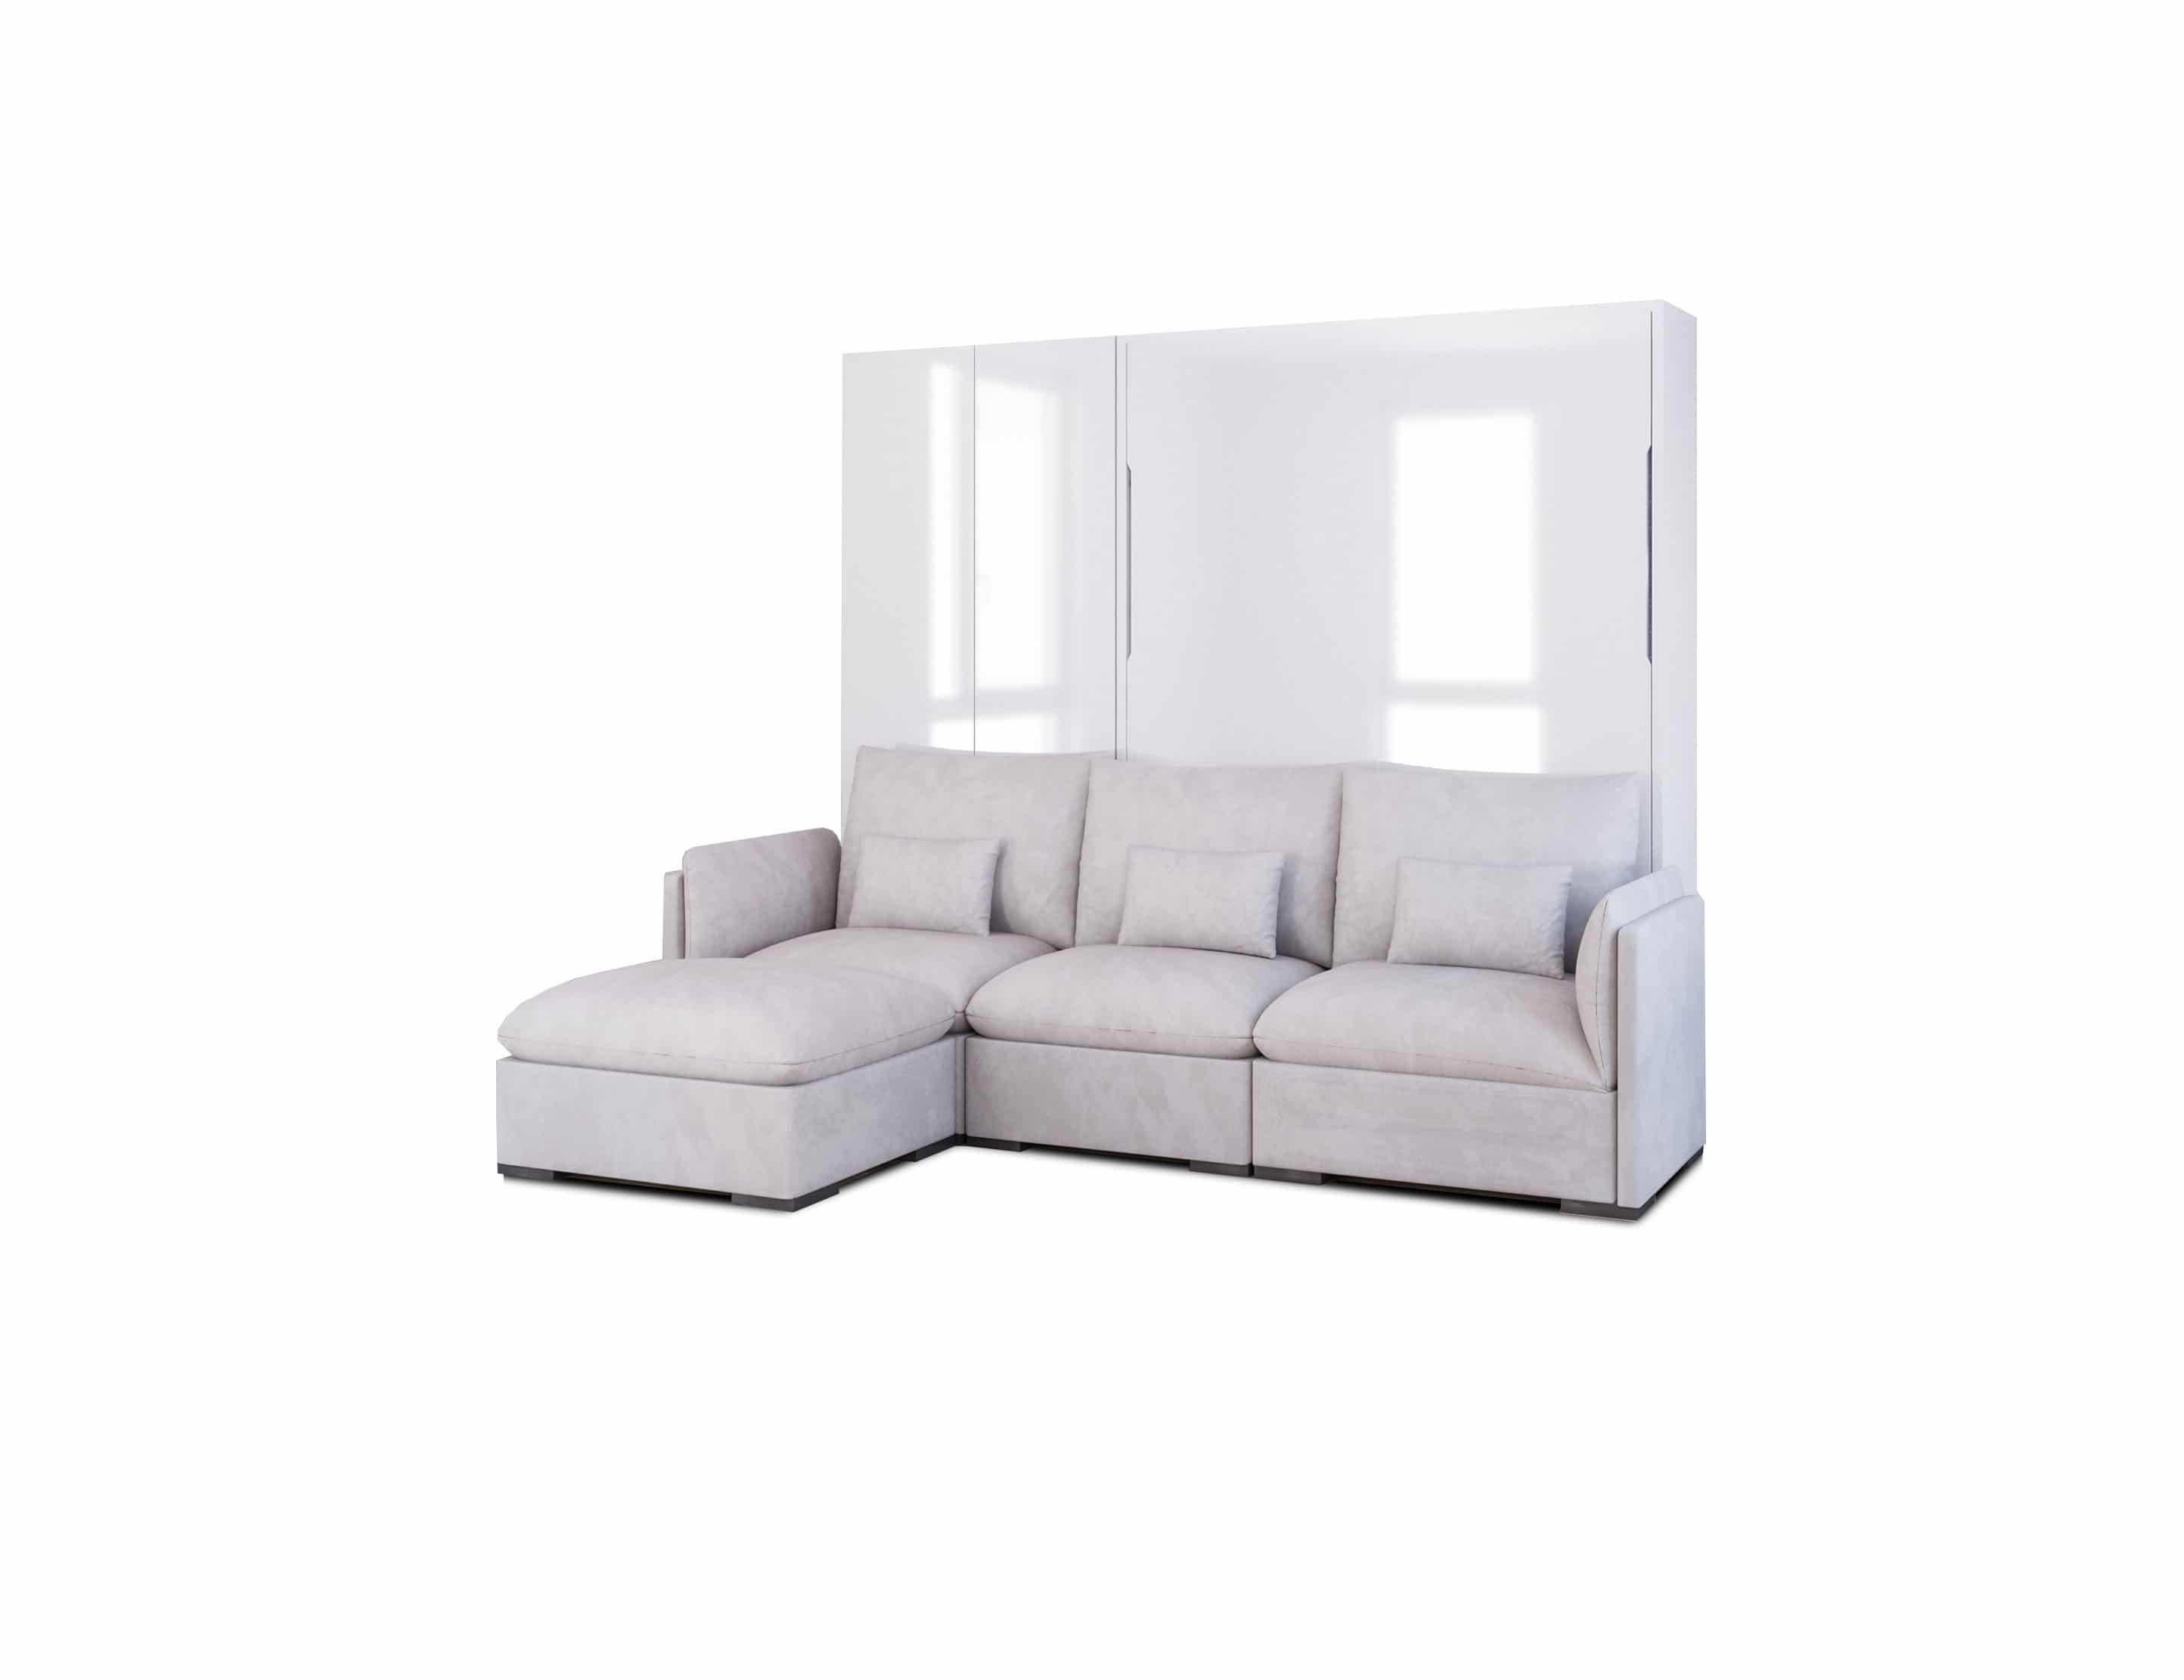 Queen Luxury Sectional Sofa Wall Bed